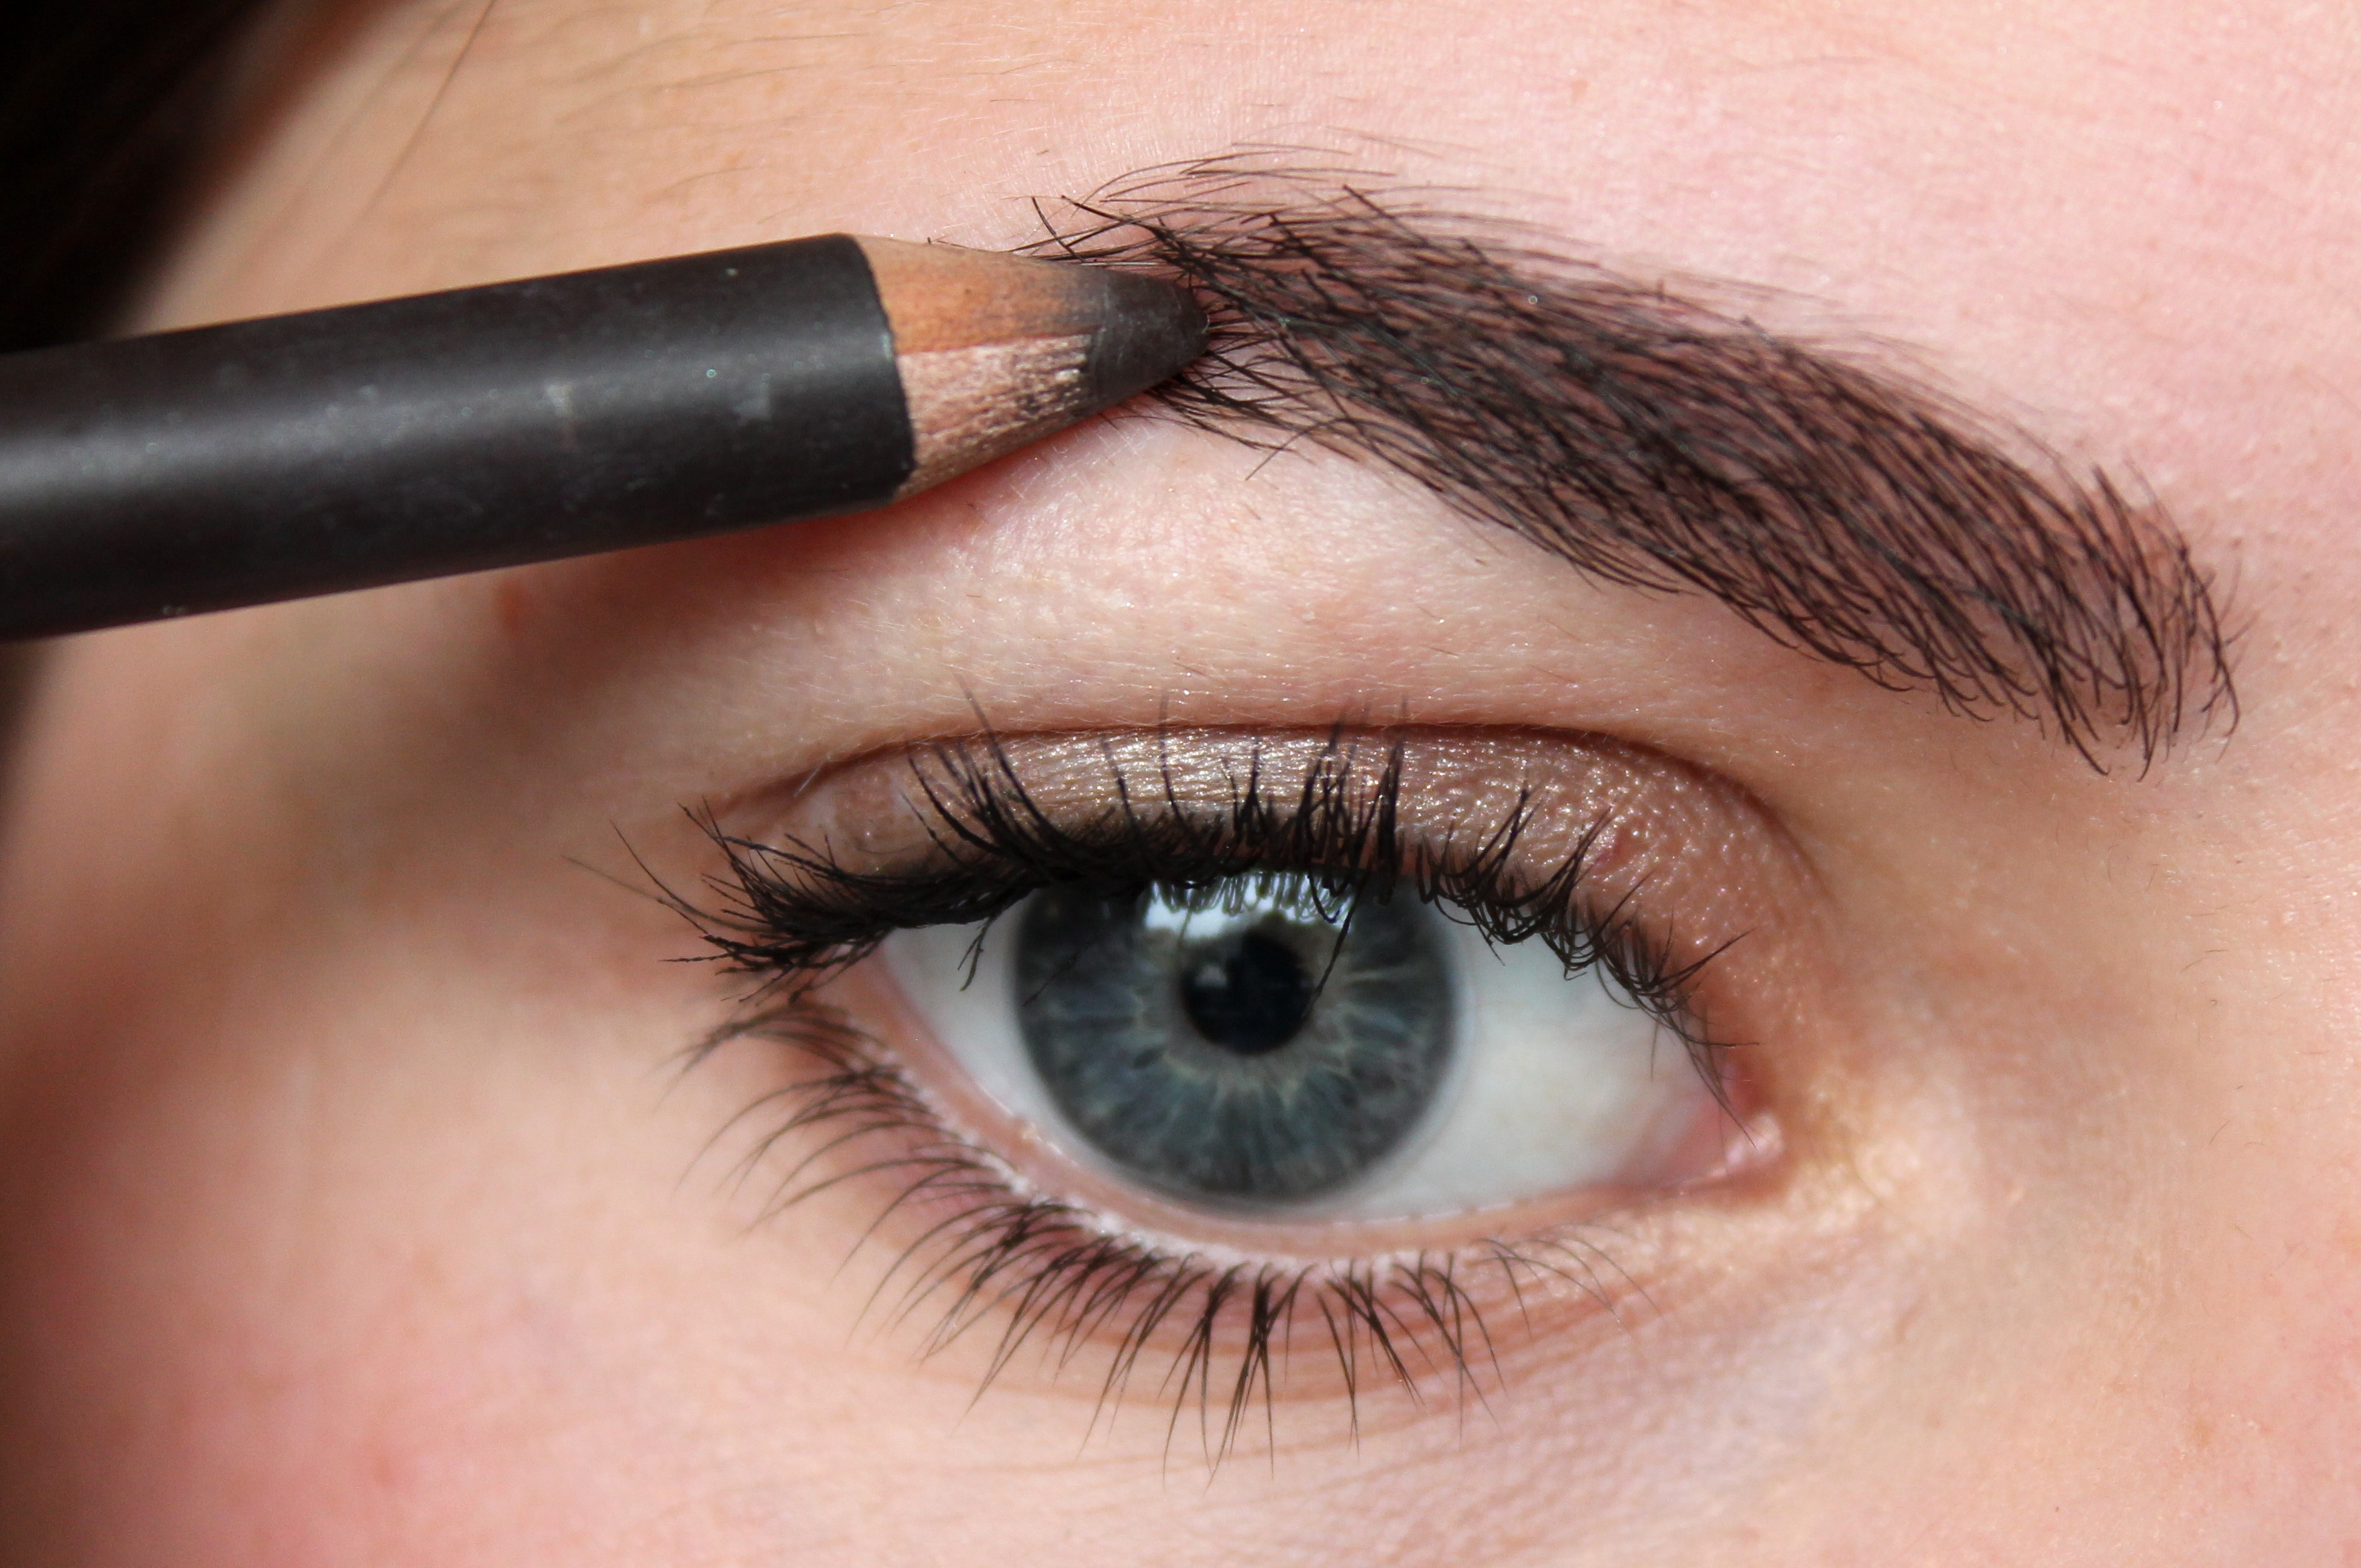 How To Match Shade Of An Eyebrow Pencil With Hair Colour